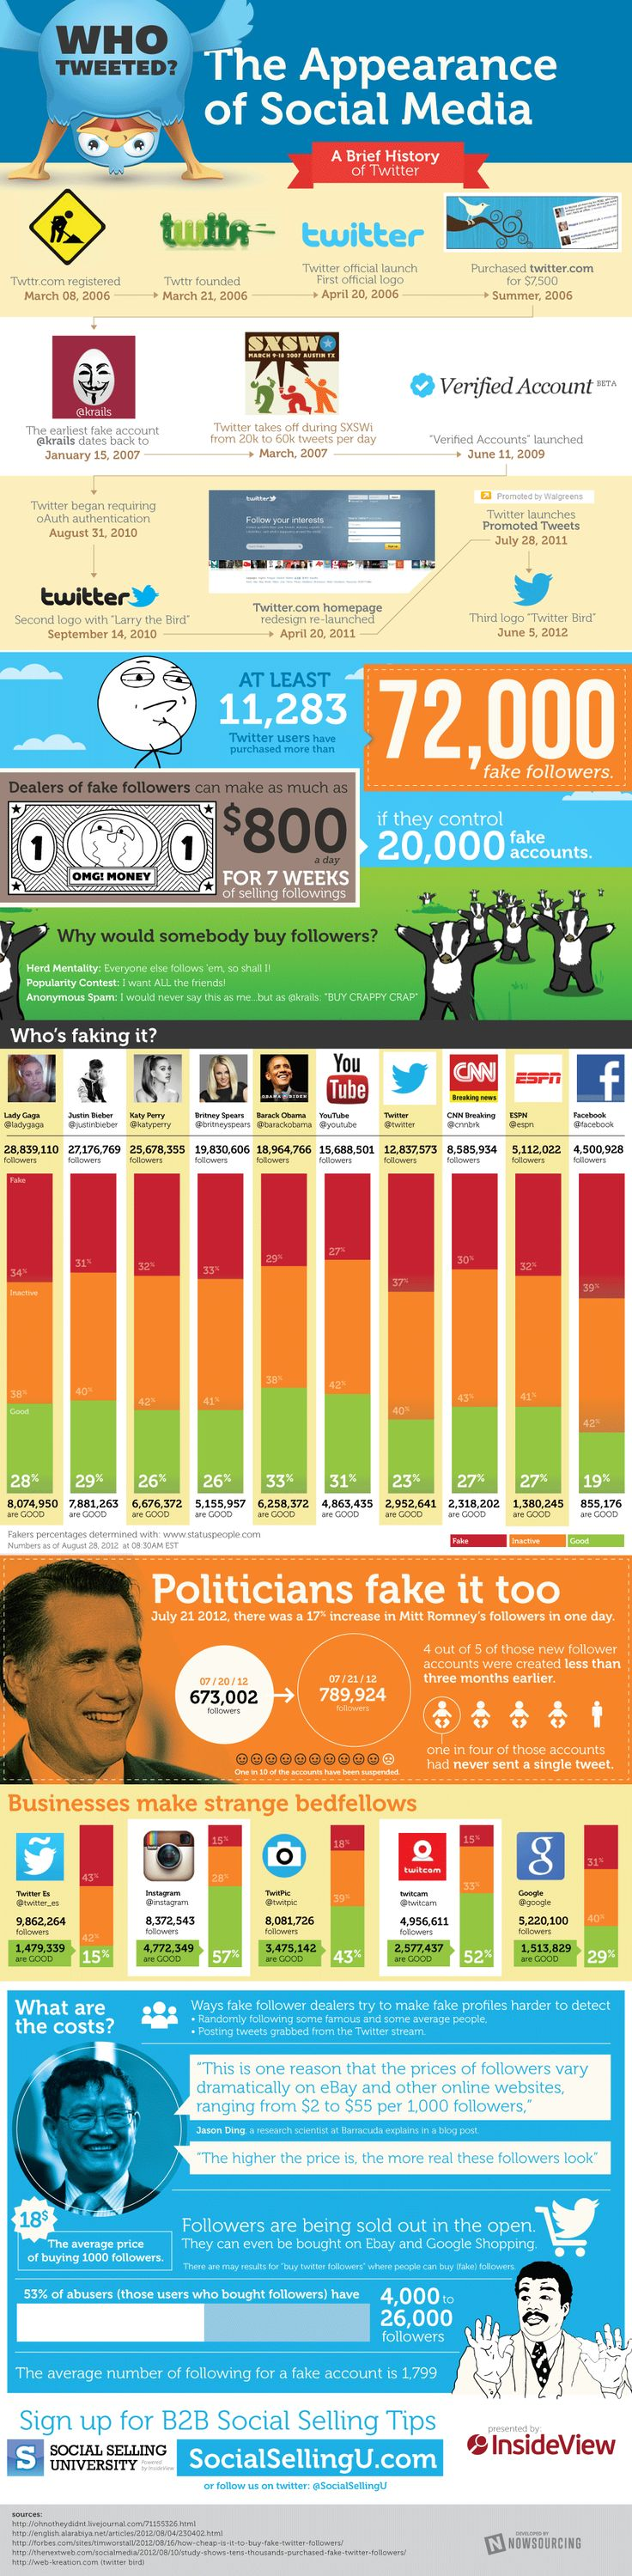 How Do You Sort Out Fake Followers From Real Ones on Twitter? [INFOGRAPHIC] - The Appearance of Social Media